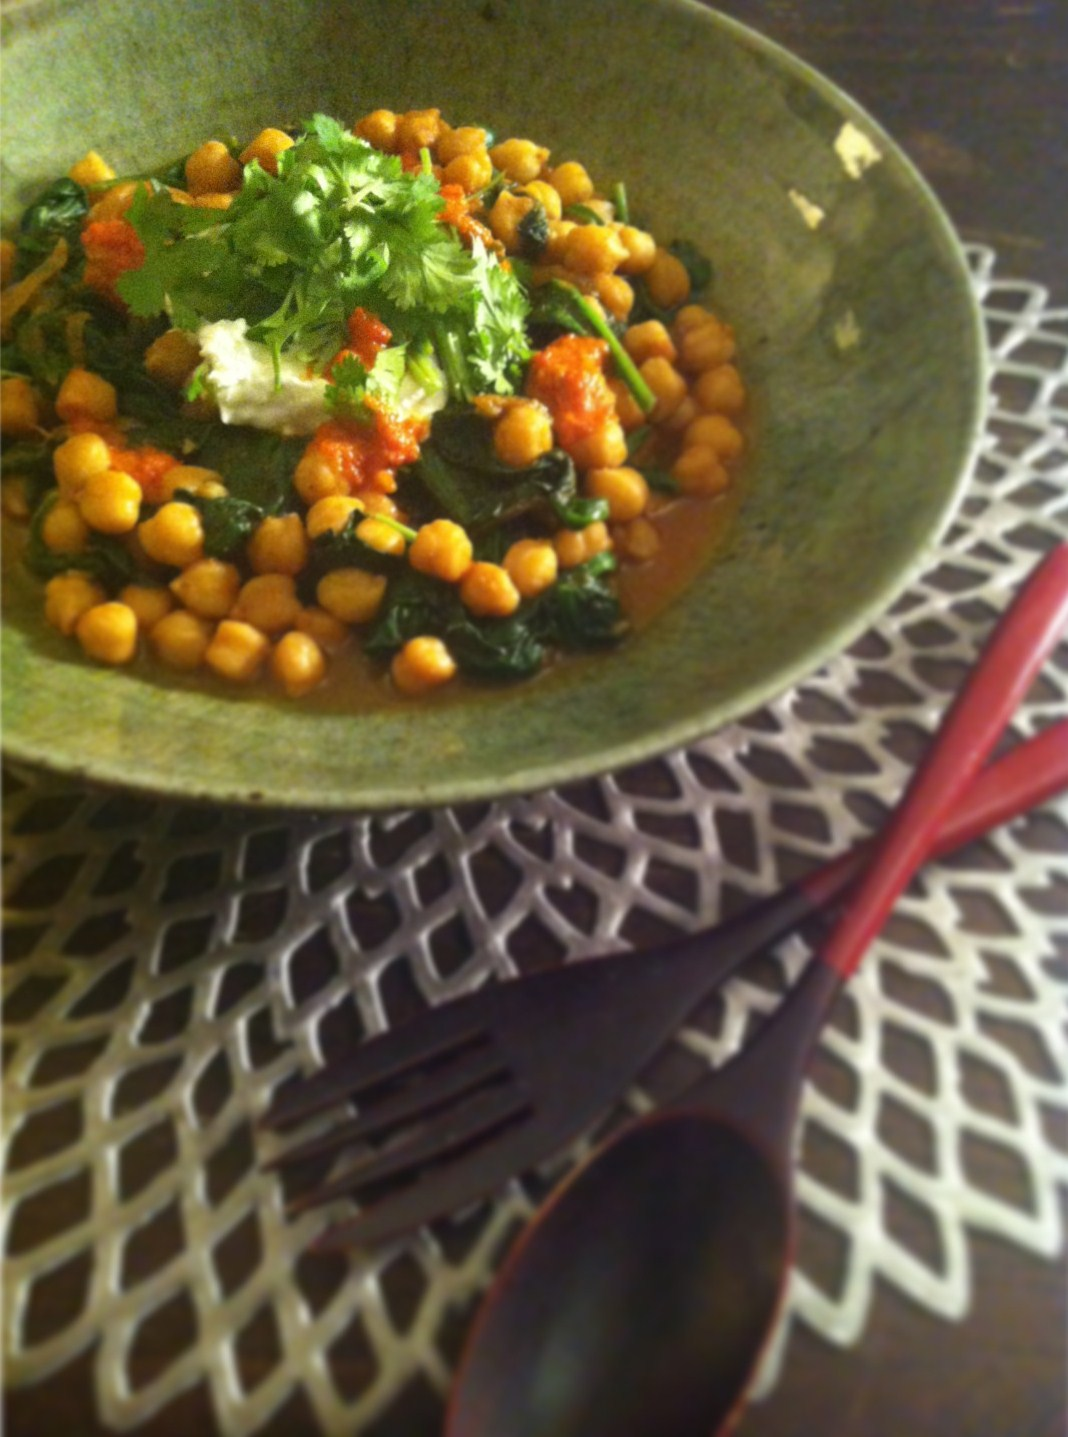 Recipe inspired by: Chickpea Stew at Gjelina (and the lack of Robert ...